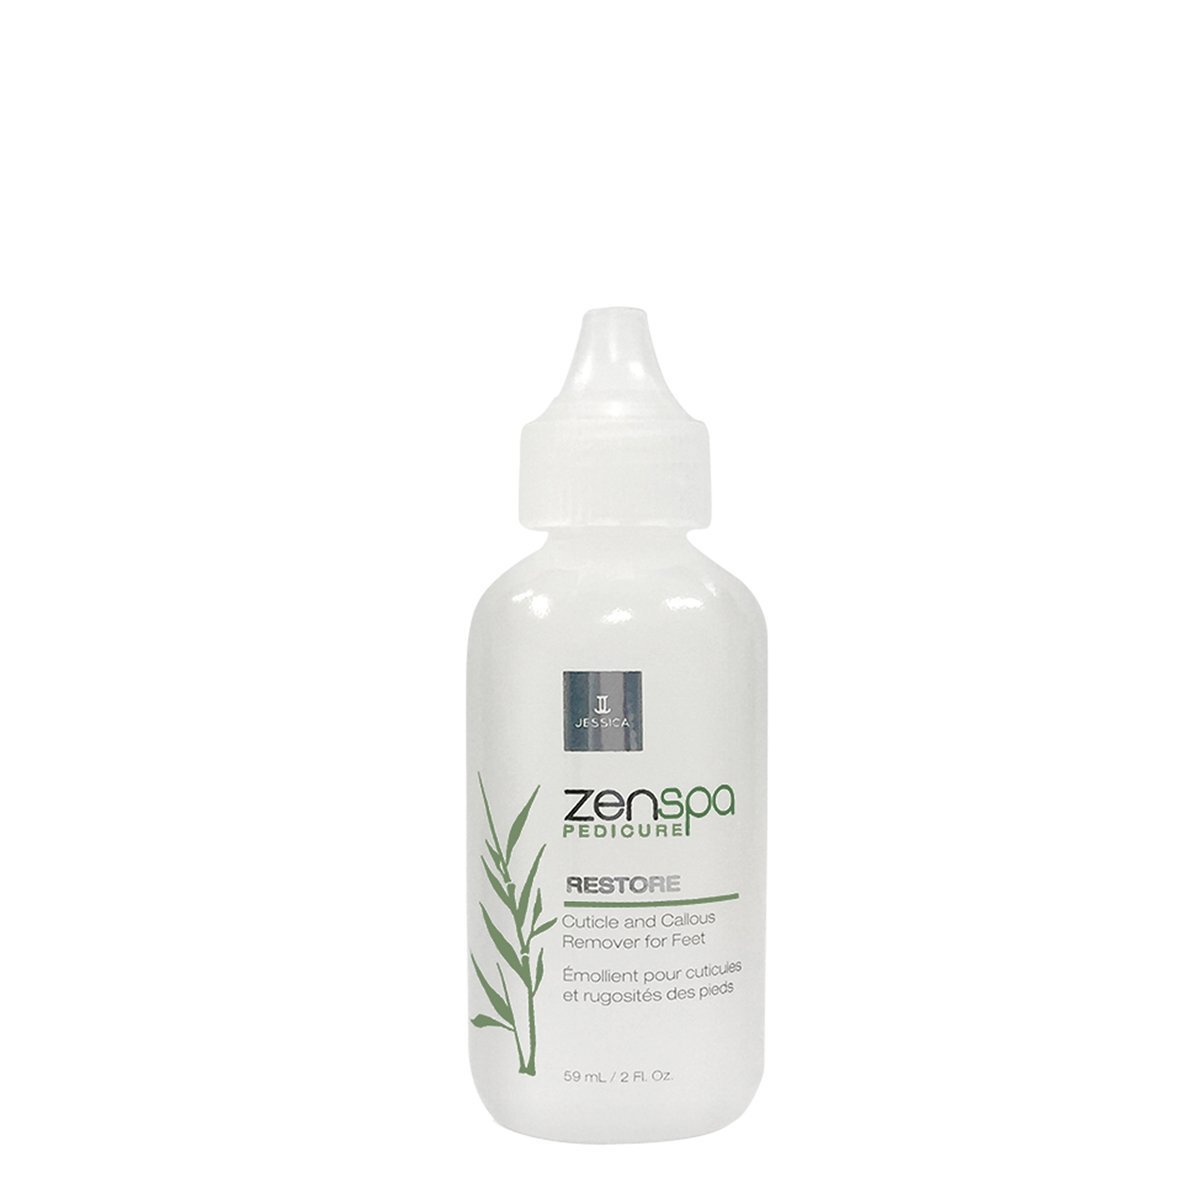 ZenSpa Restore Cuticle and Callous Remover, 2 Ounce SFR Products ZEN340